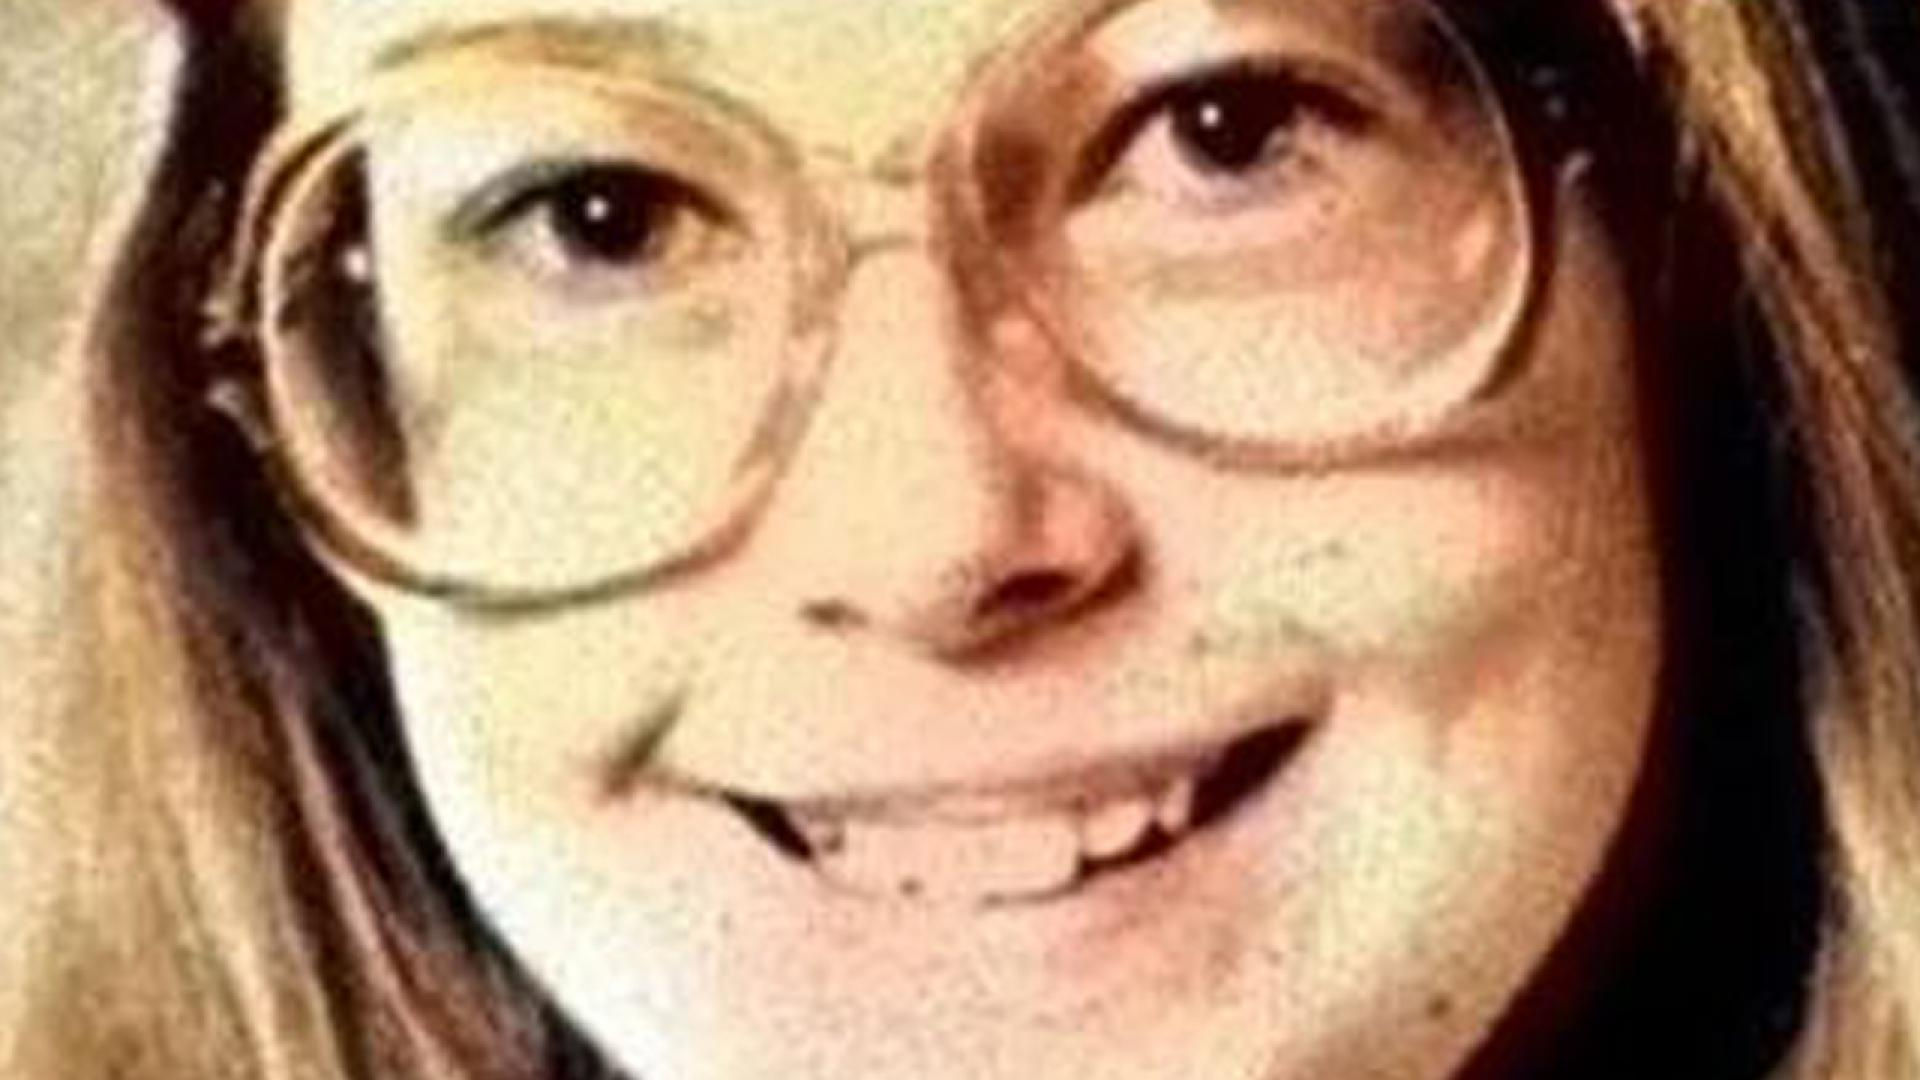 Michella Welch was just 12 years old when she was taken from a park in Tacoma on March 26, 1986.